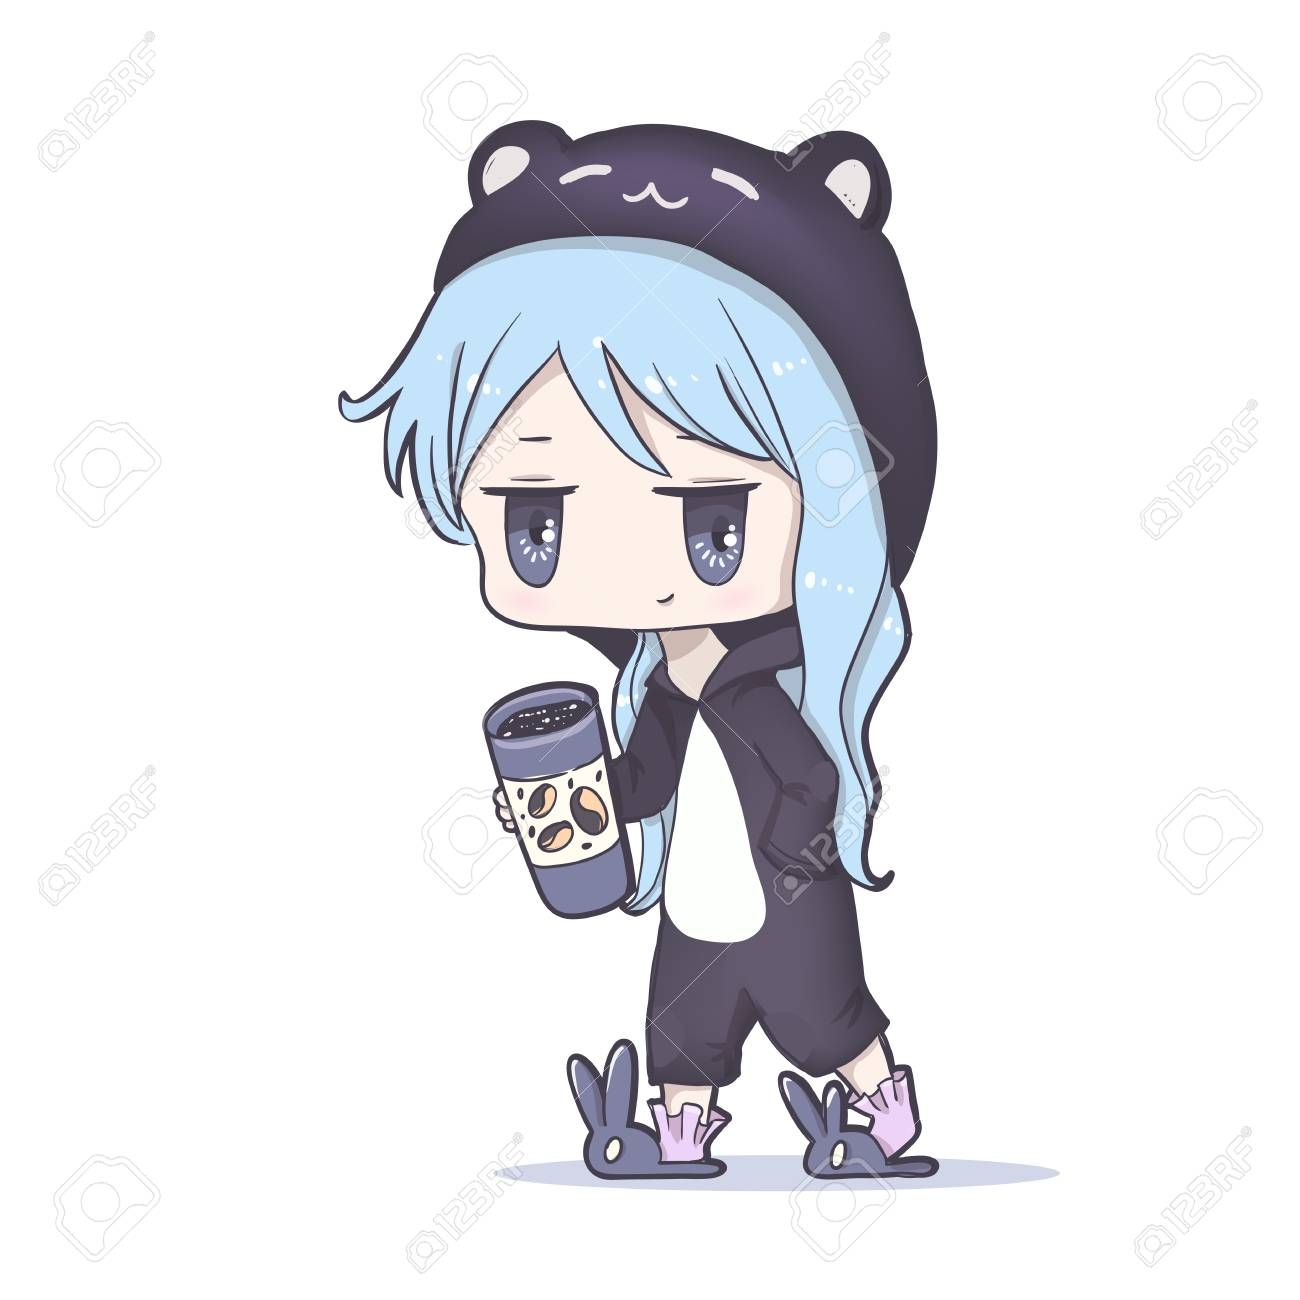 Cute vector illustration ake up and drink coffee kawaii anime girl big eyes